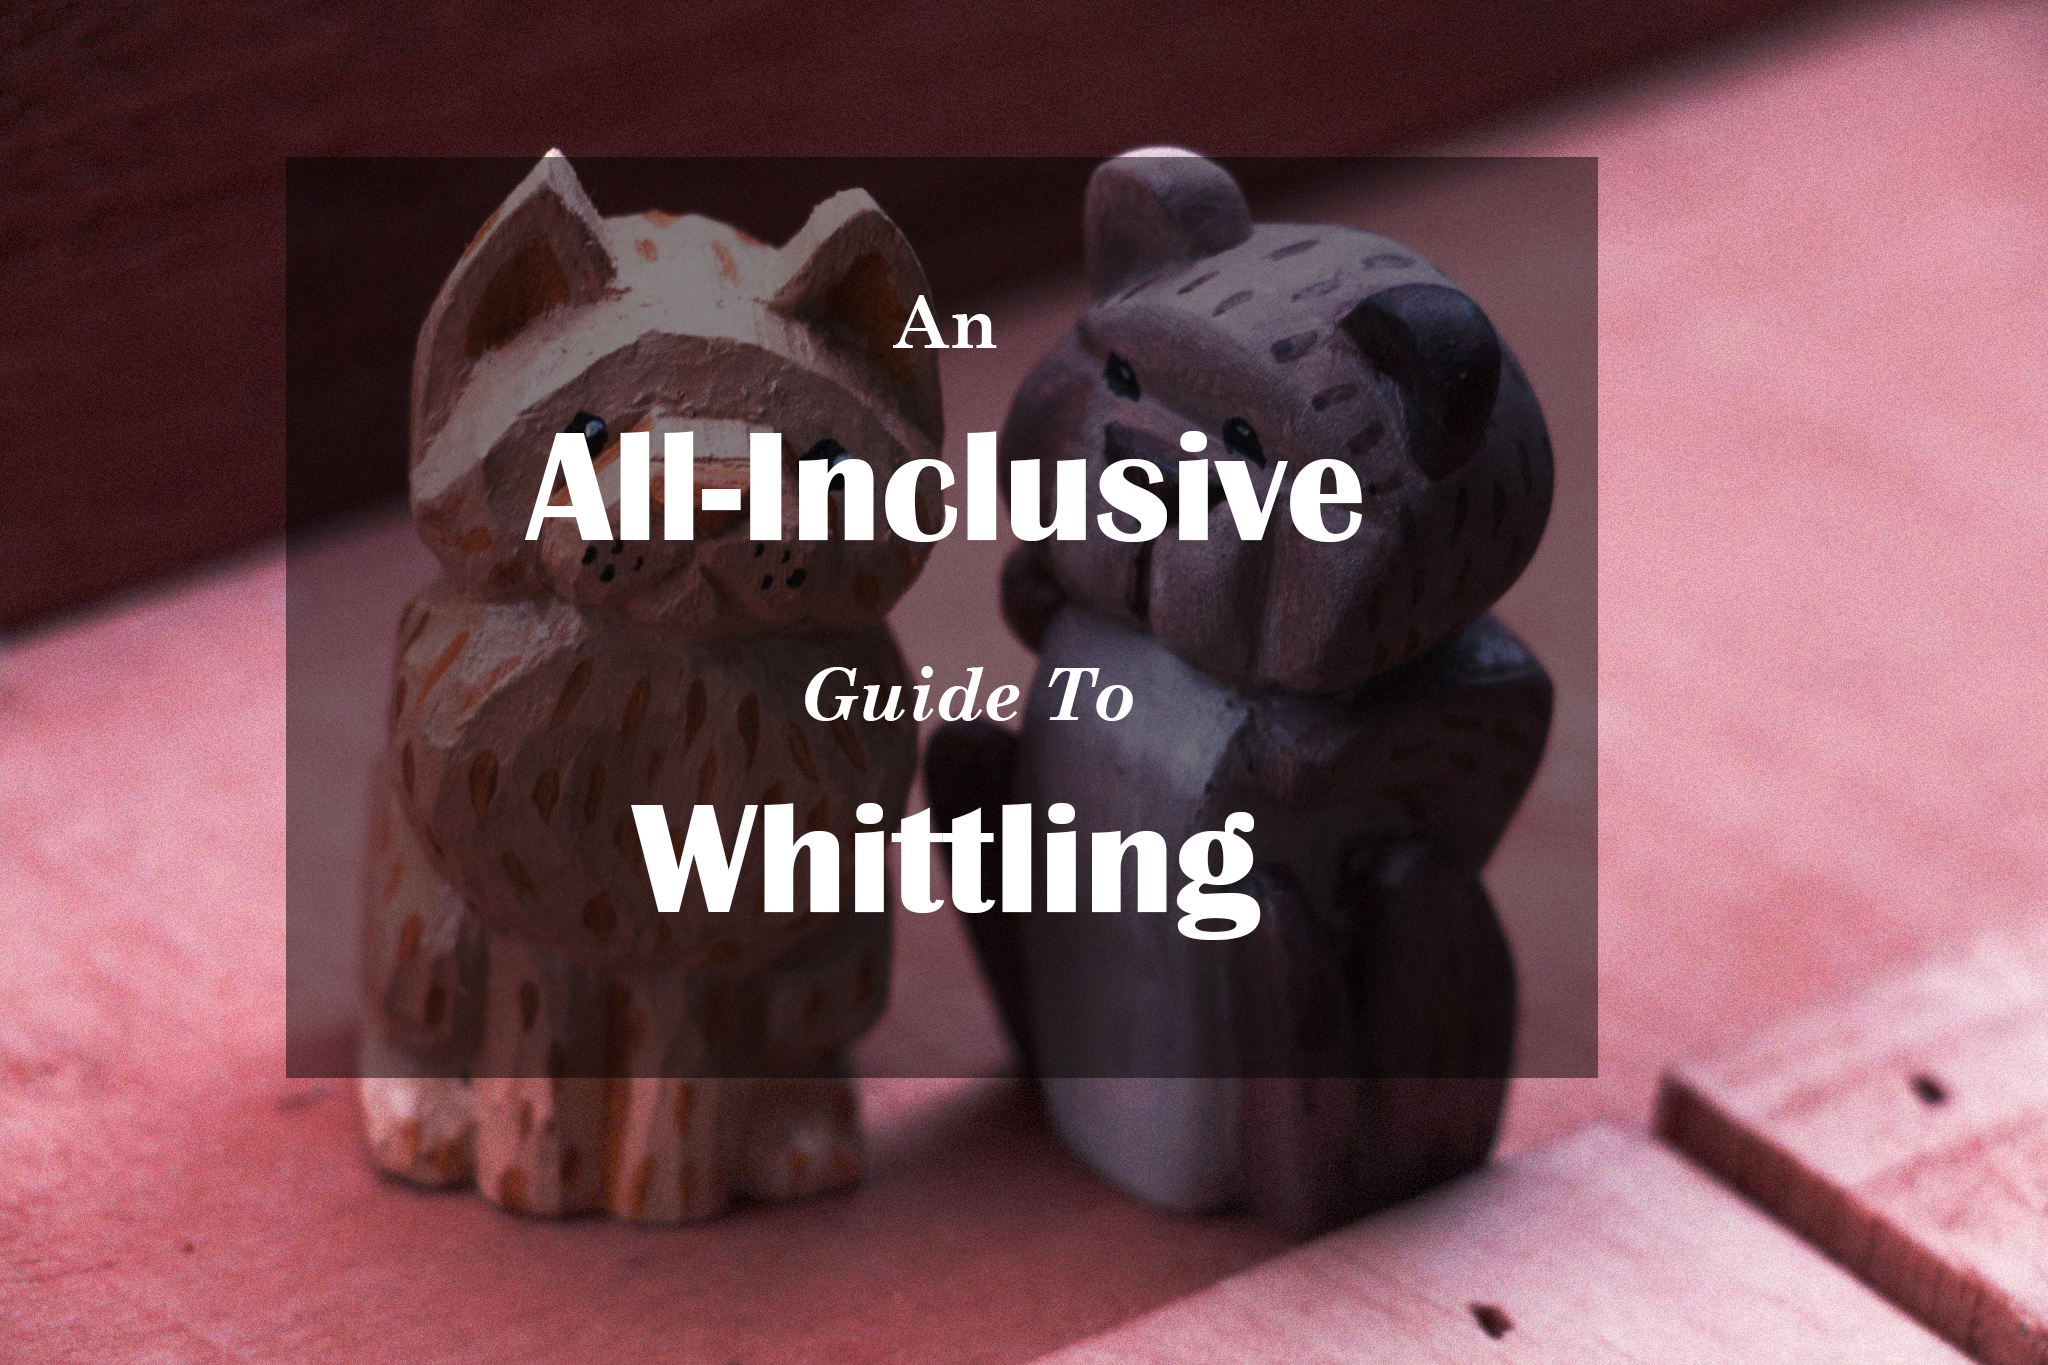 guide to whittling